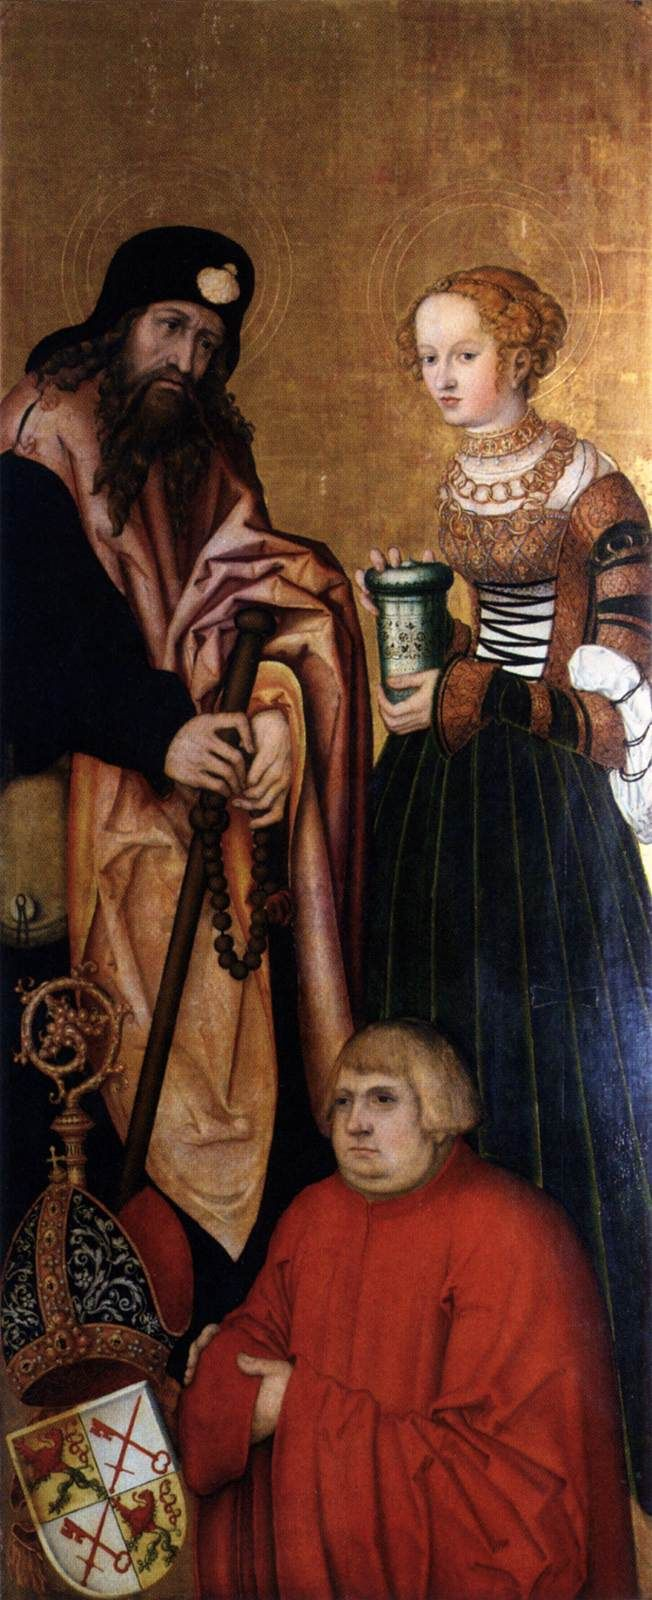 ❤ - LUCAS CRANACH (1472 - 1553) - Altar wing (right, inner side) - 1537. Cathedral, Naumburg.